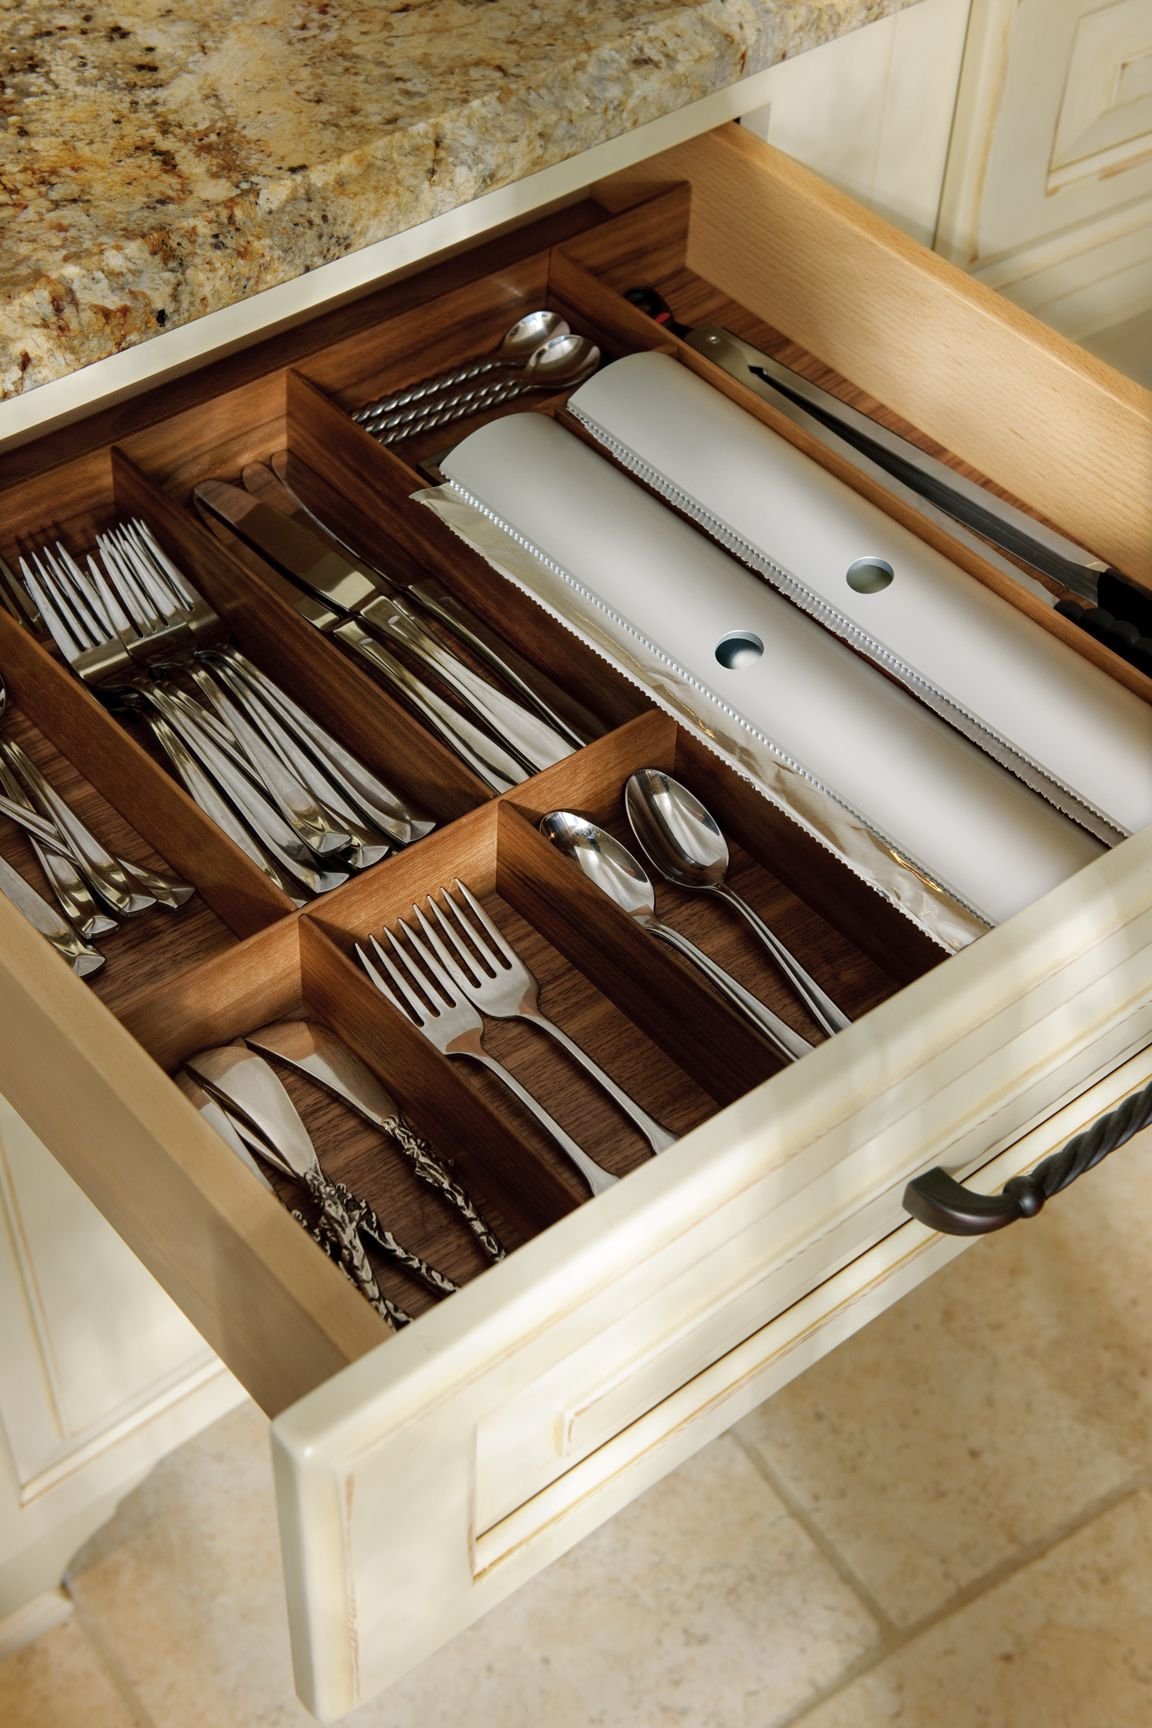 pictures ideas out of slide inserts kitchen drawer design elegant drawers home for and cabinets beautiful pull